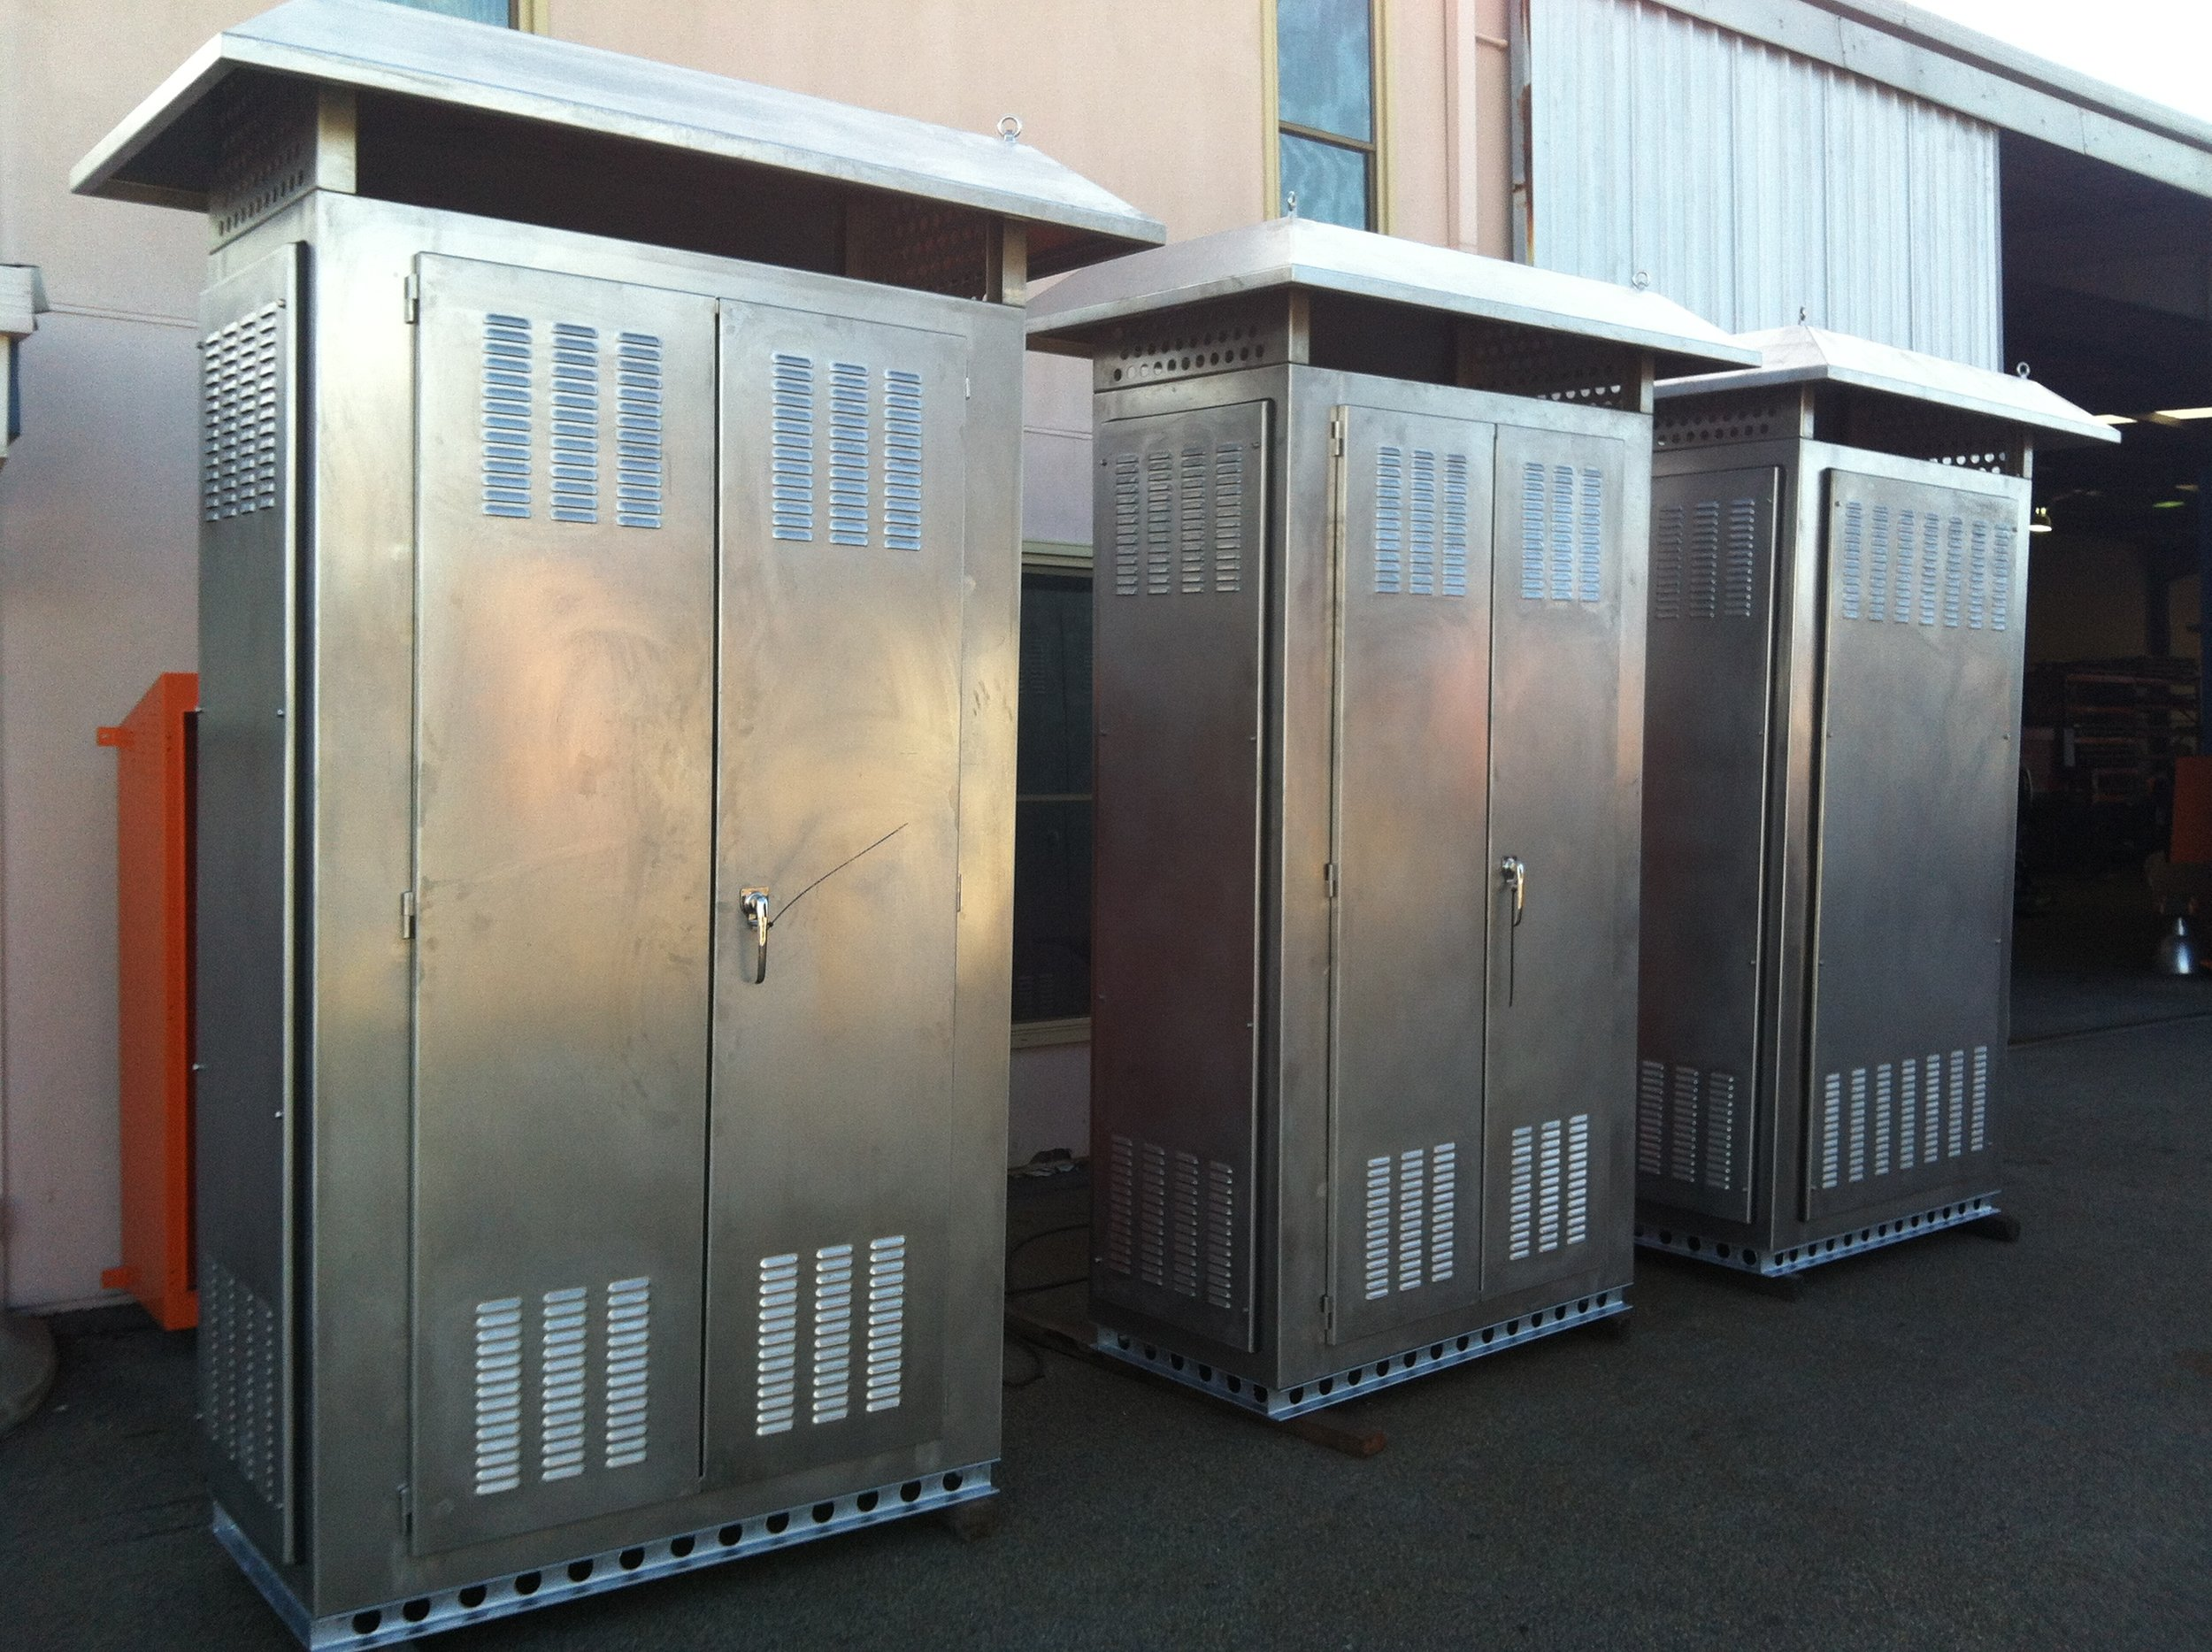 rio tinto stainless steel resistor cubicles.JPG